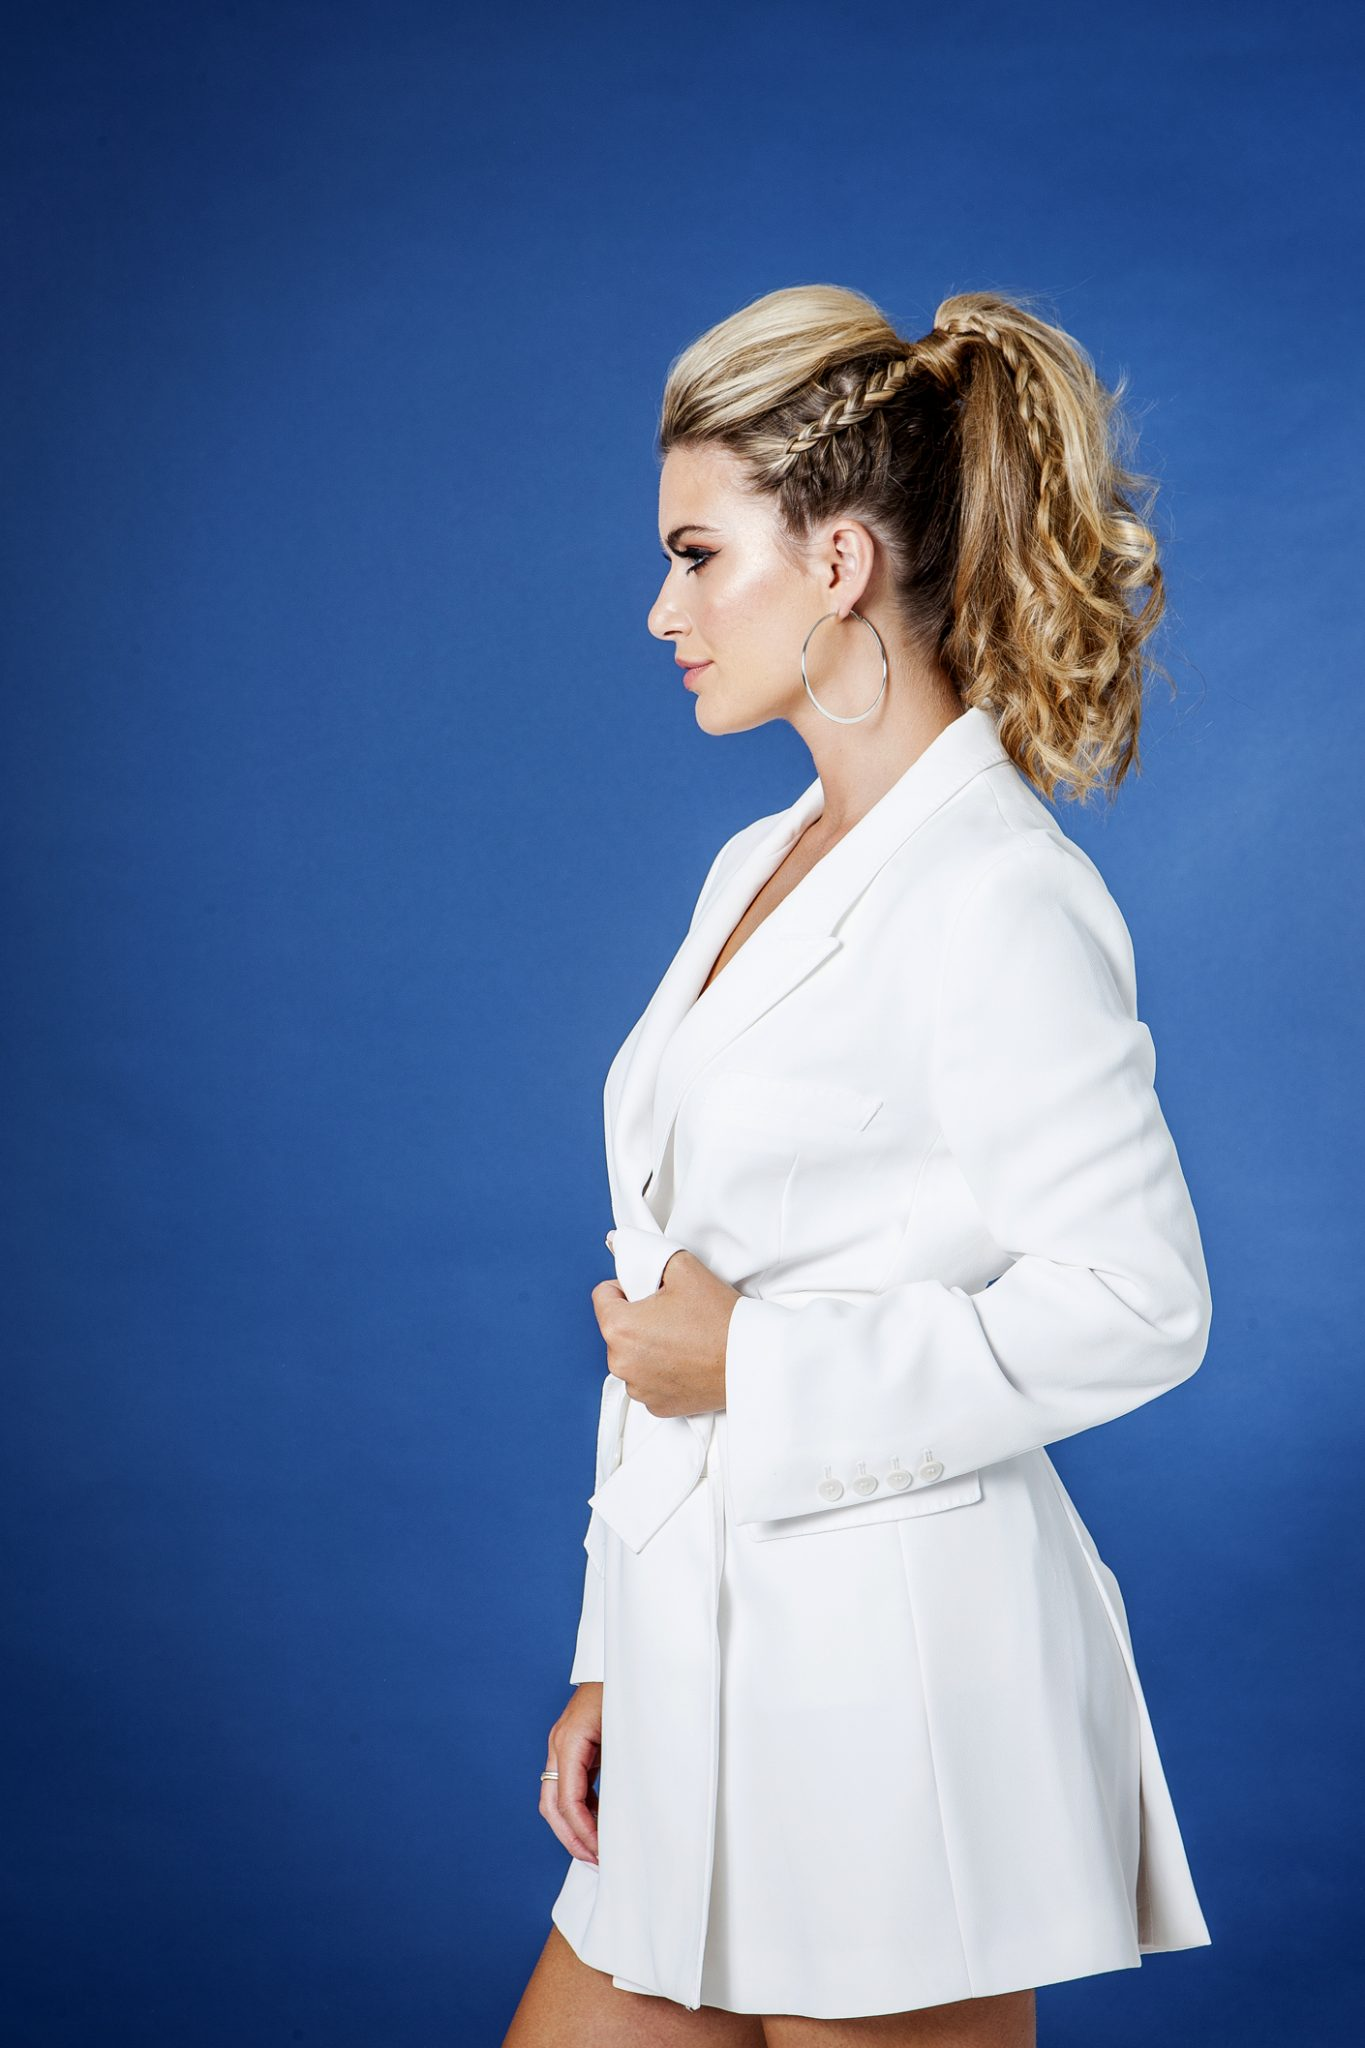 lifestyle-fashion-and-hair-photographer-in-manchester-and-london